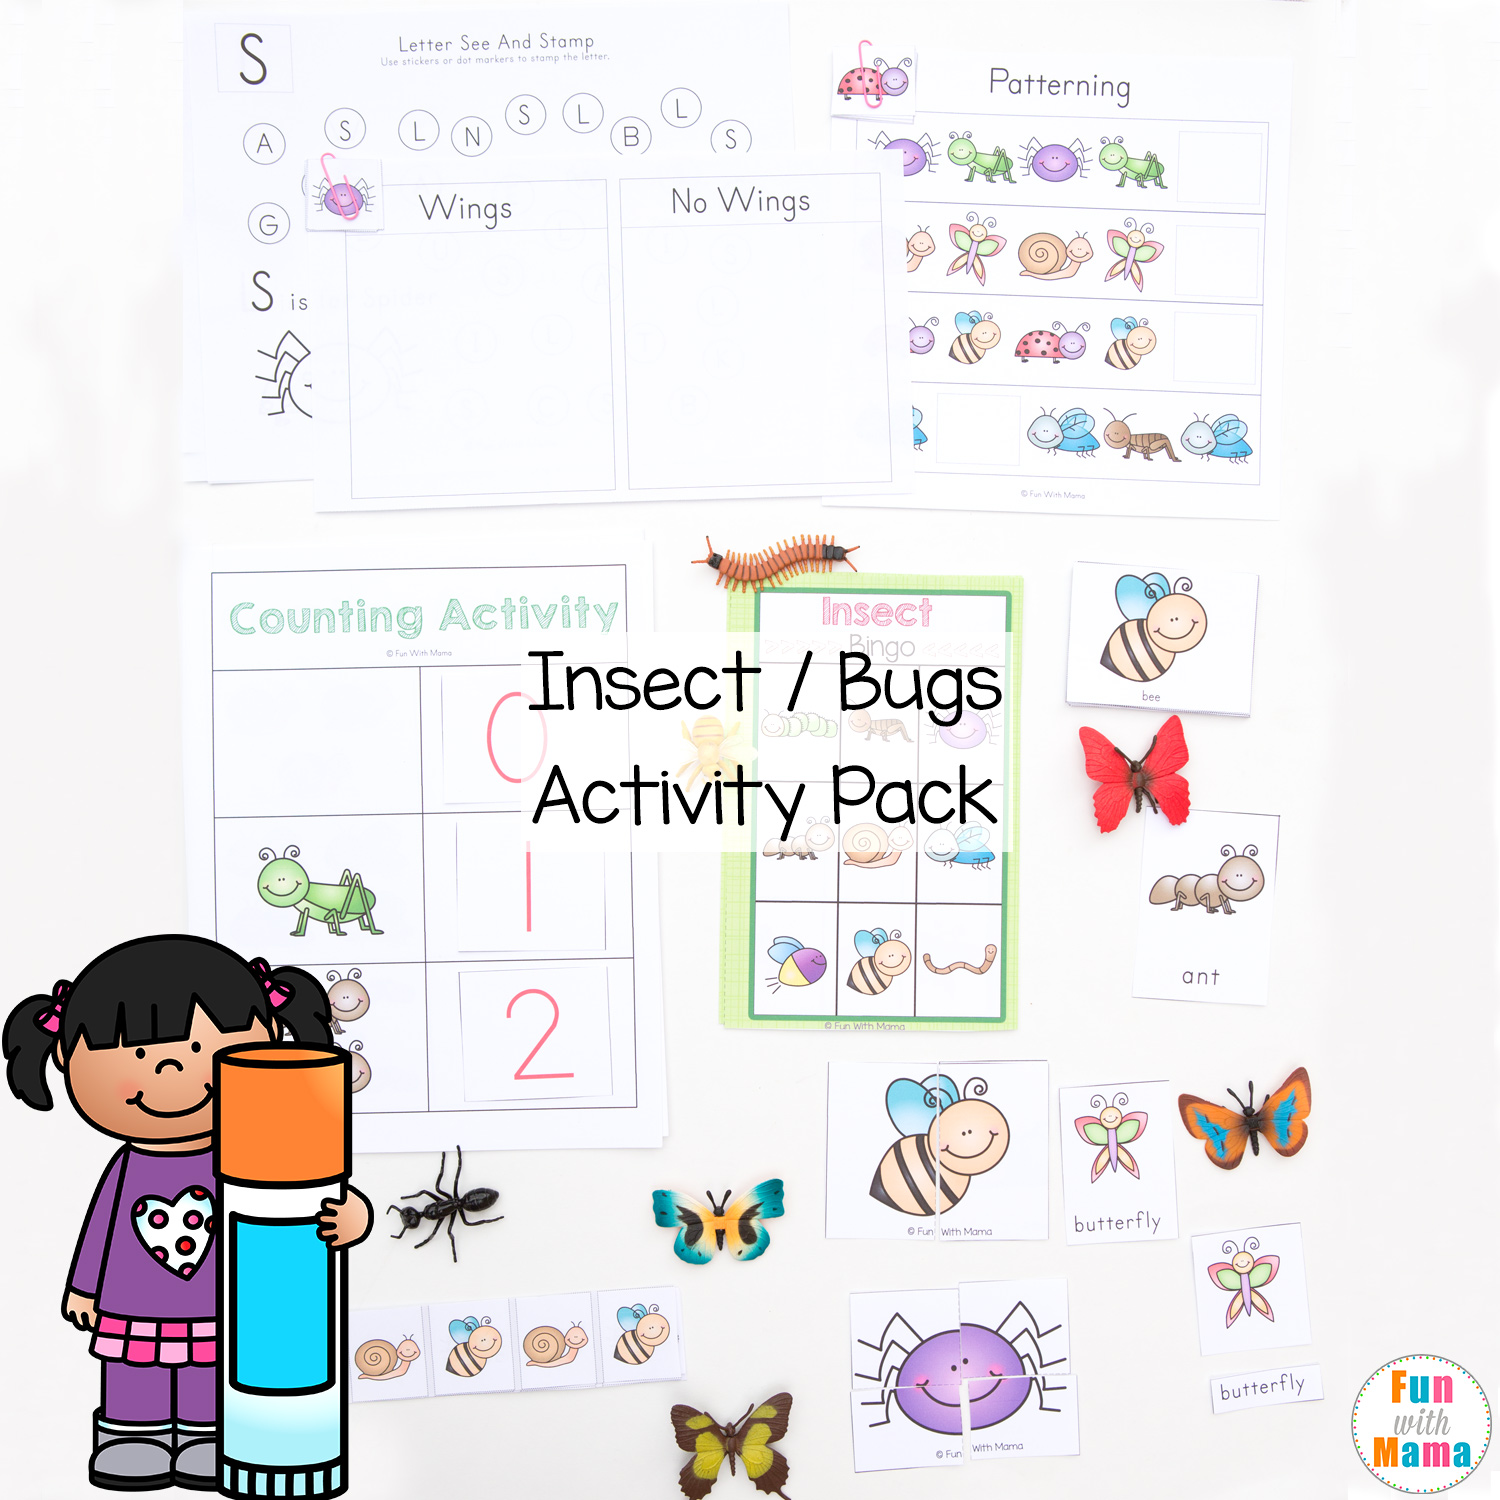 picture regarding Printable Bugs identified as Insect Insects Printable Match Pack for Preschoolers